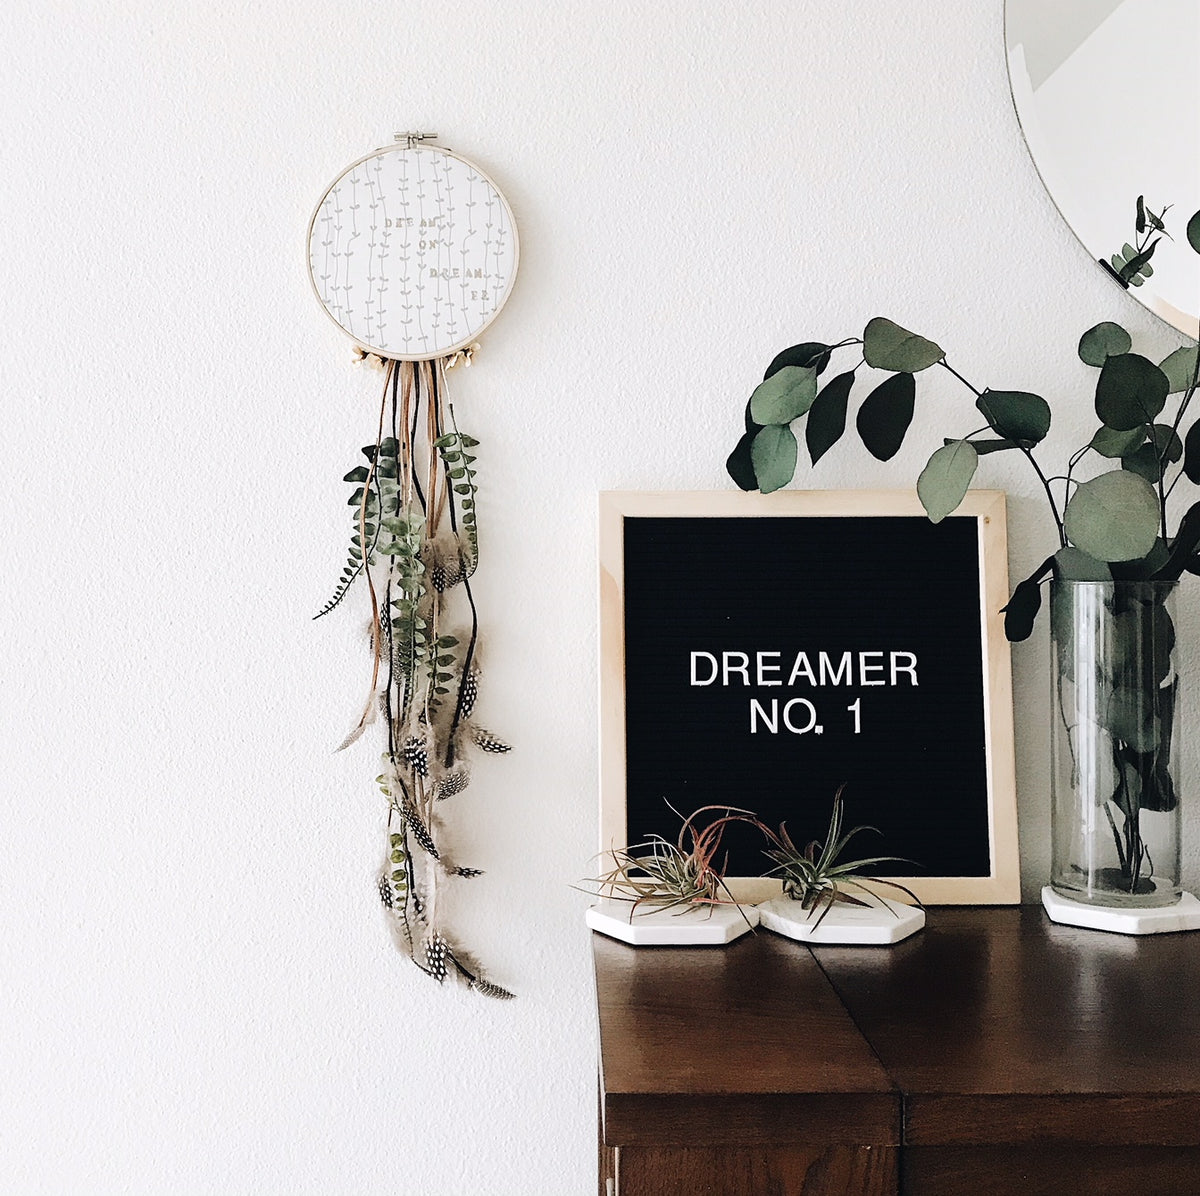 Dreamer No. 1 | 100 Days of Dreamers